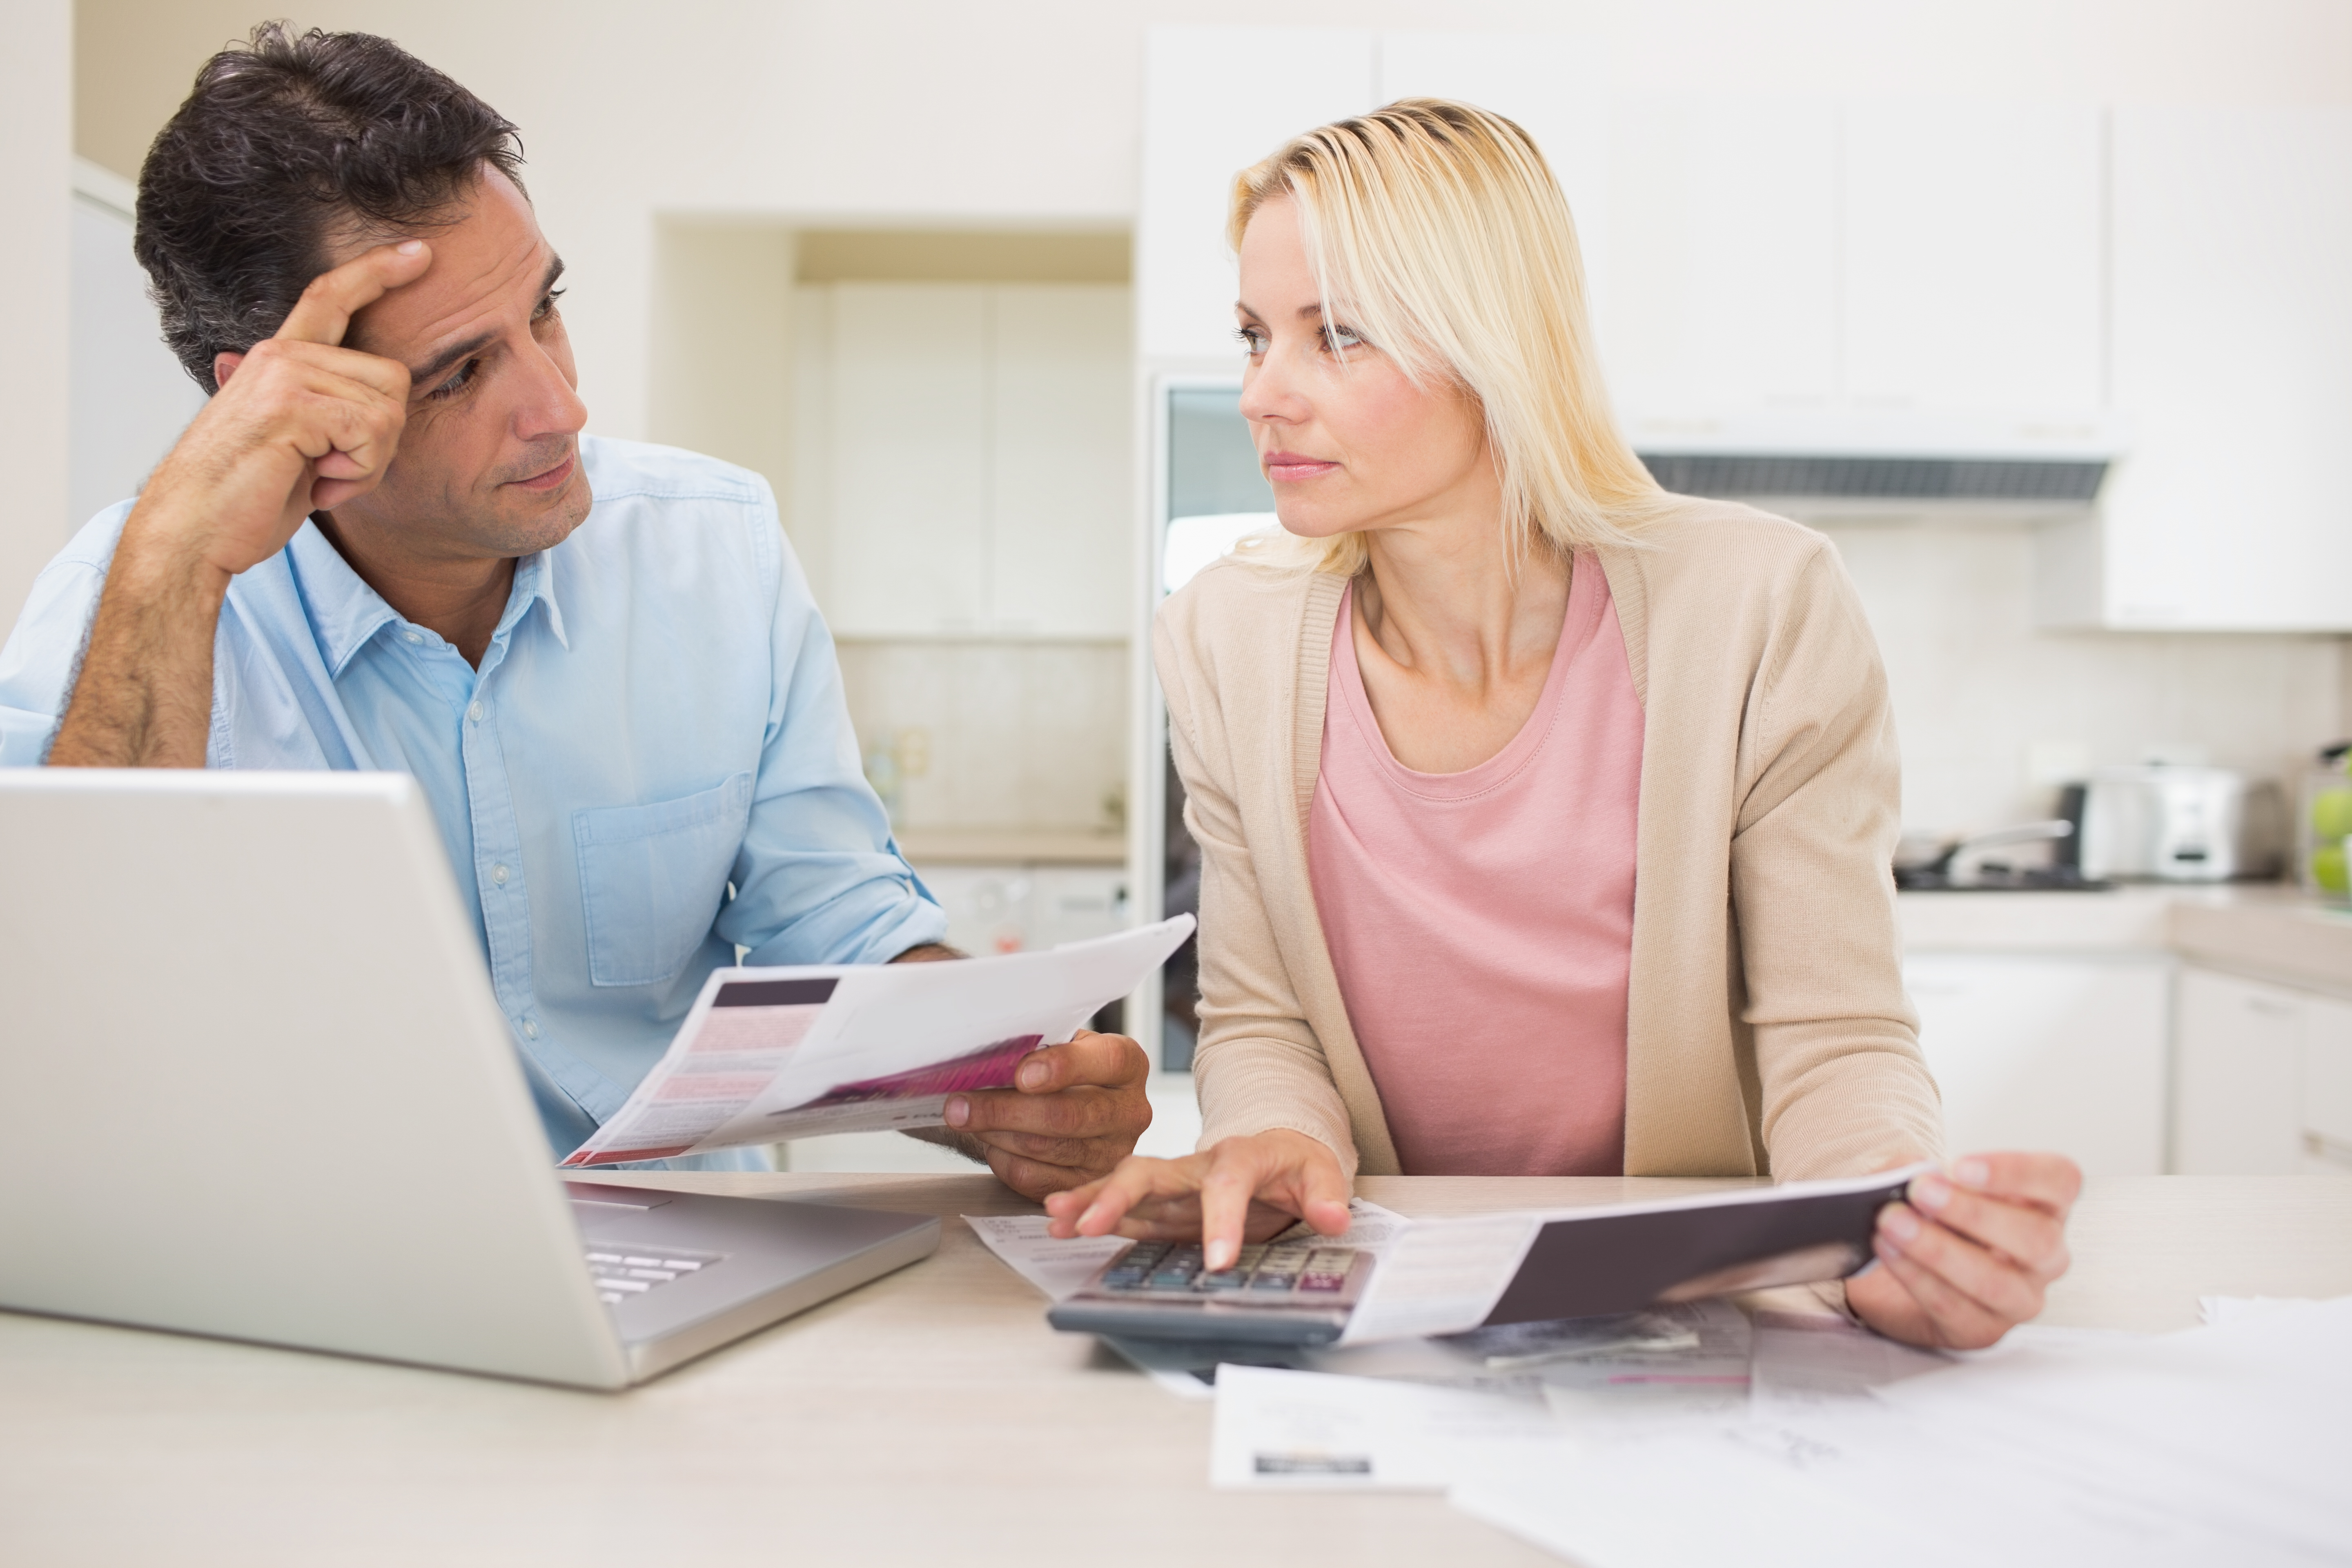 photodune-12522458-worried-couple-with-bills-and-laptop-in-the-kitchen-at-home-xxl